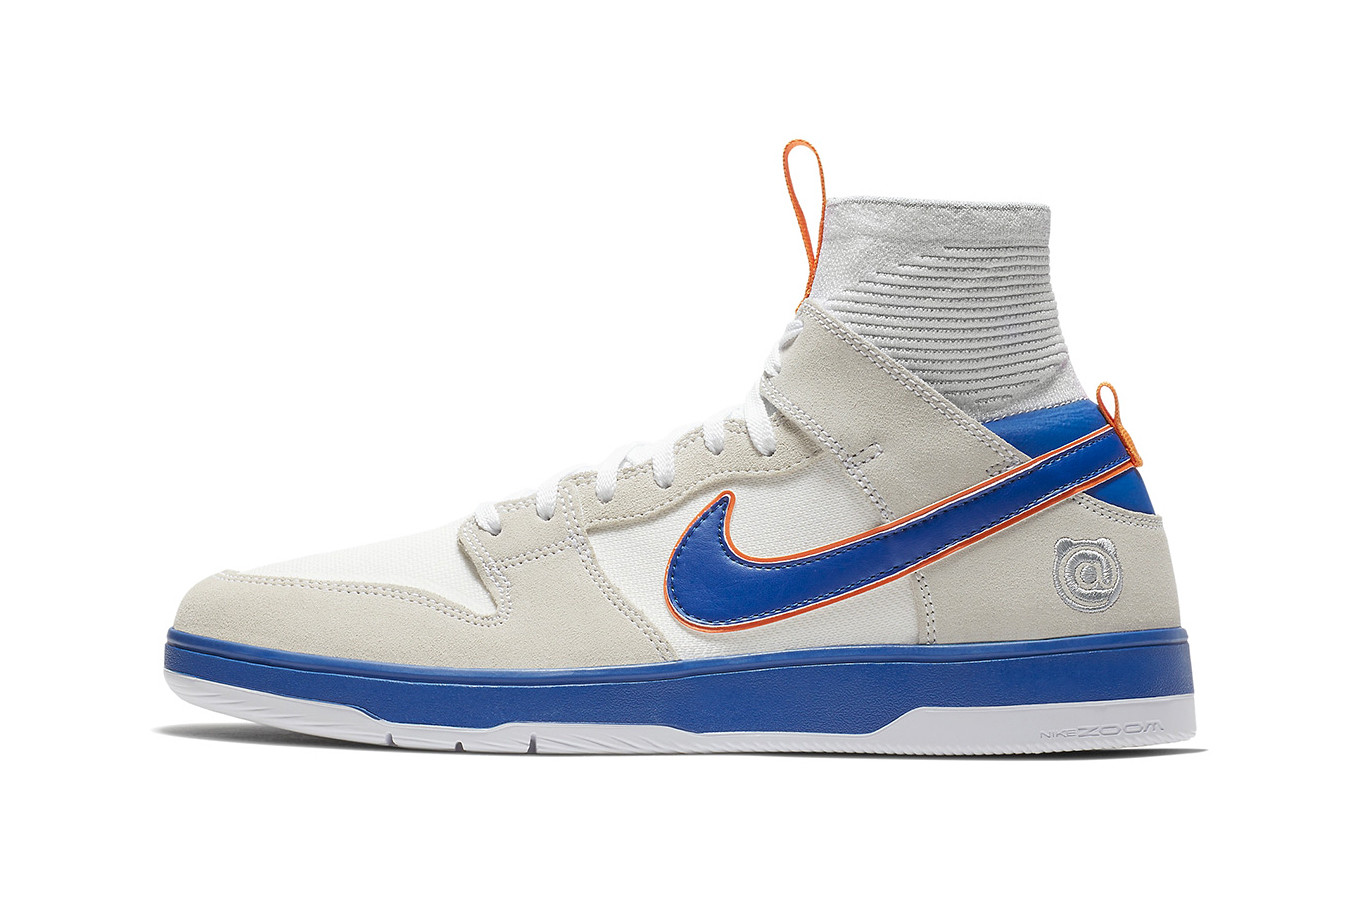 new high quality b18cb 49e1d sneakersy nike dunk sky hi essential ... 5cb47ee81e